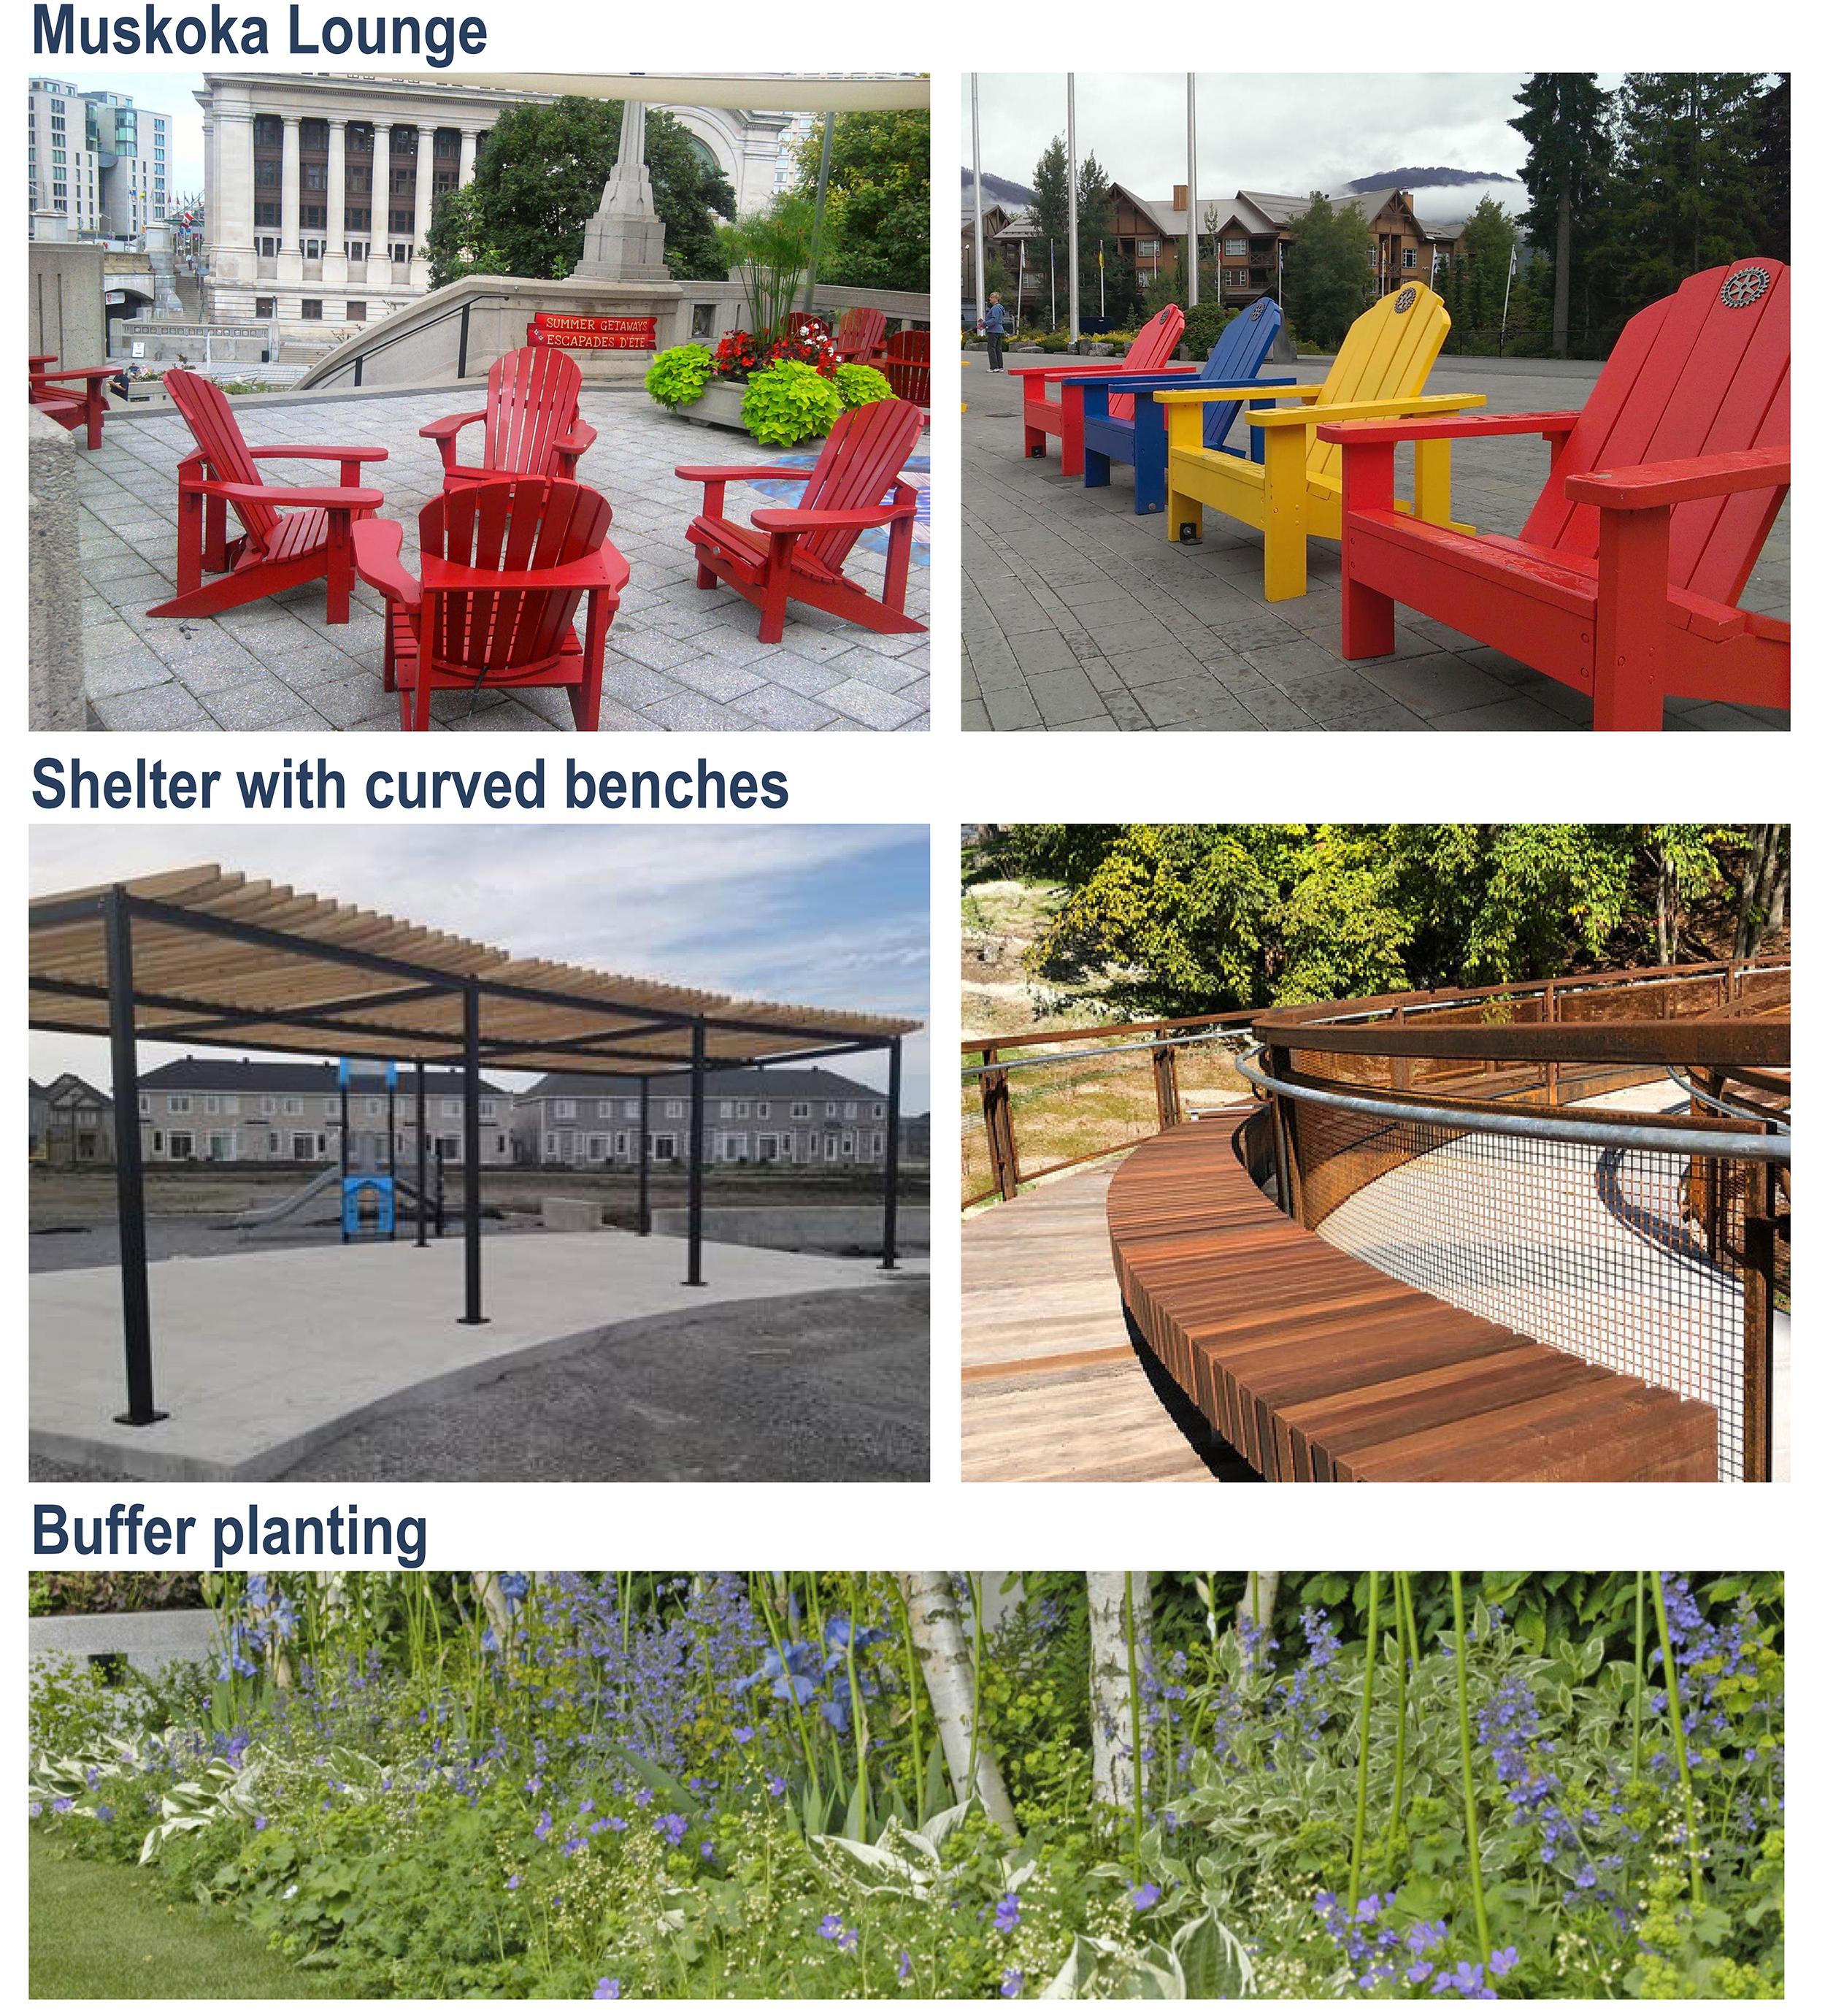 An image with multiple images with examples of muskoka chairs, a shelter with curved benches and buffer planting.